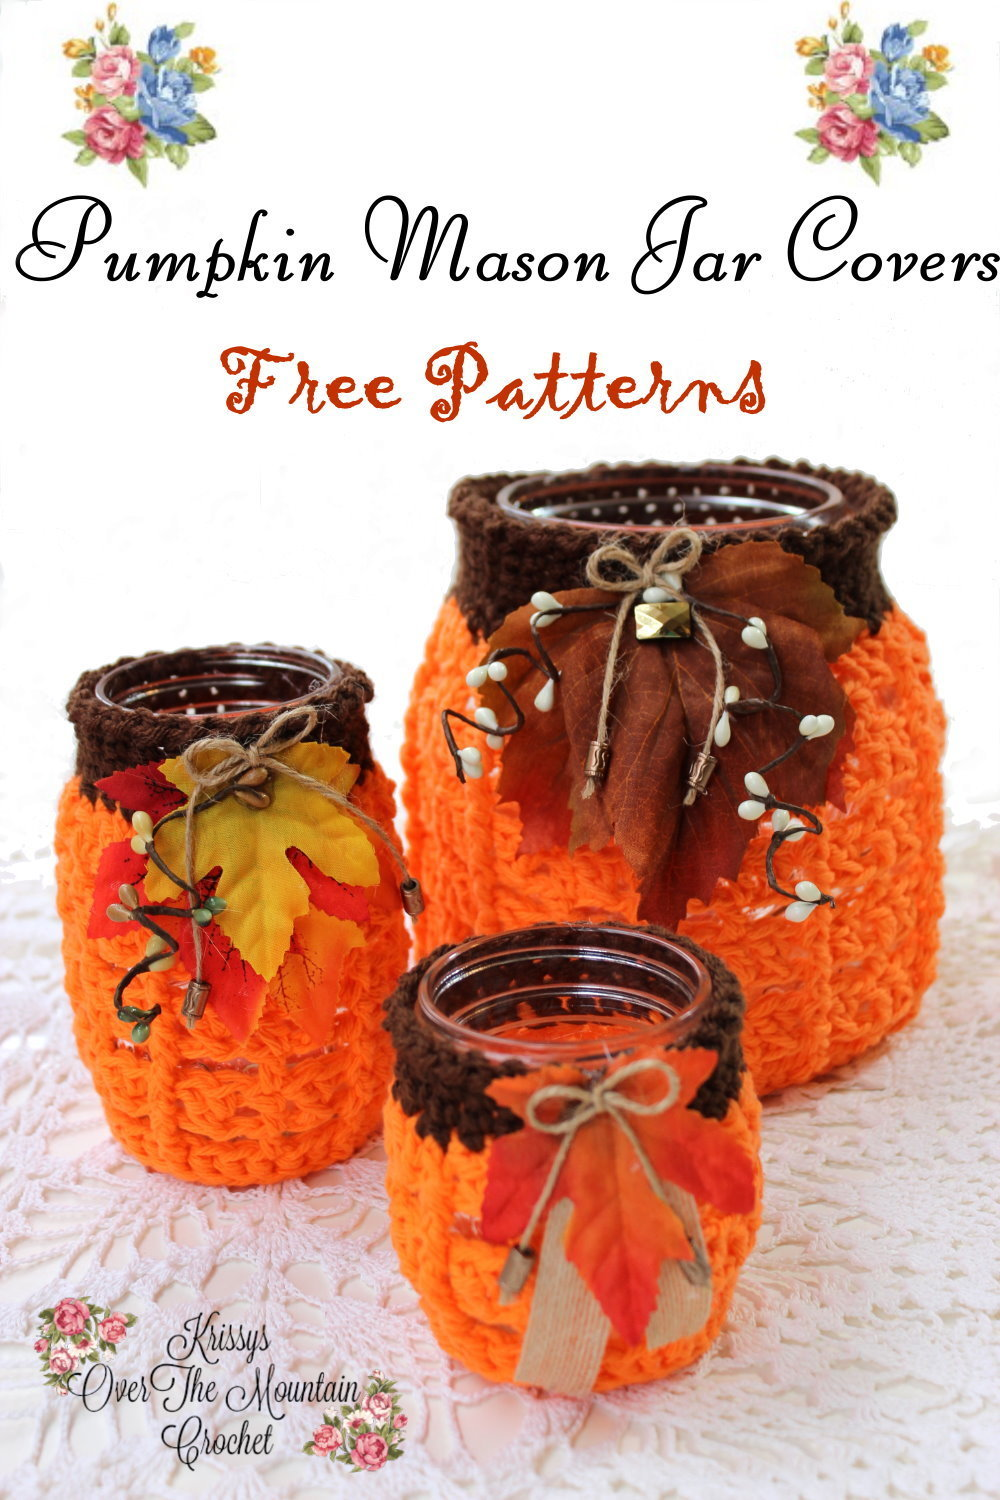 Pumpkin jar covers